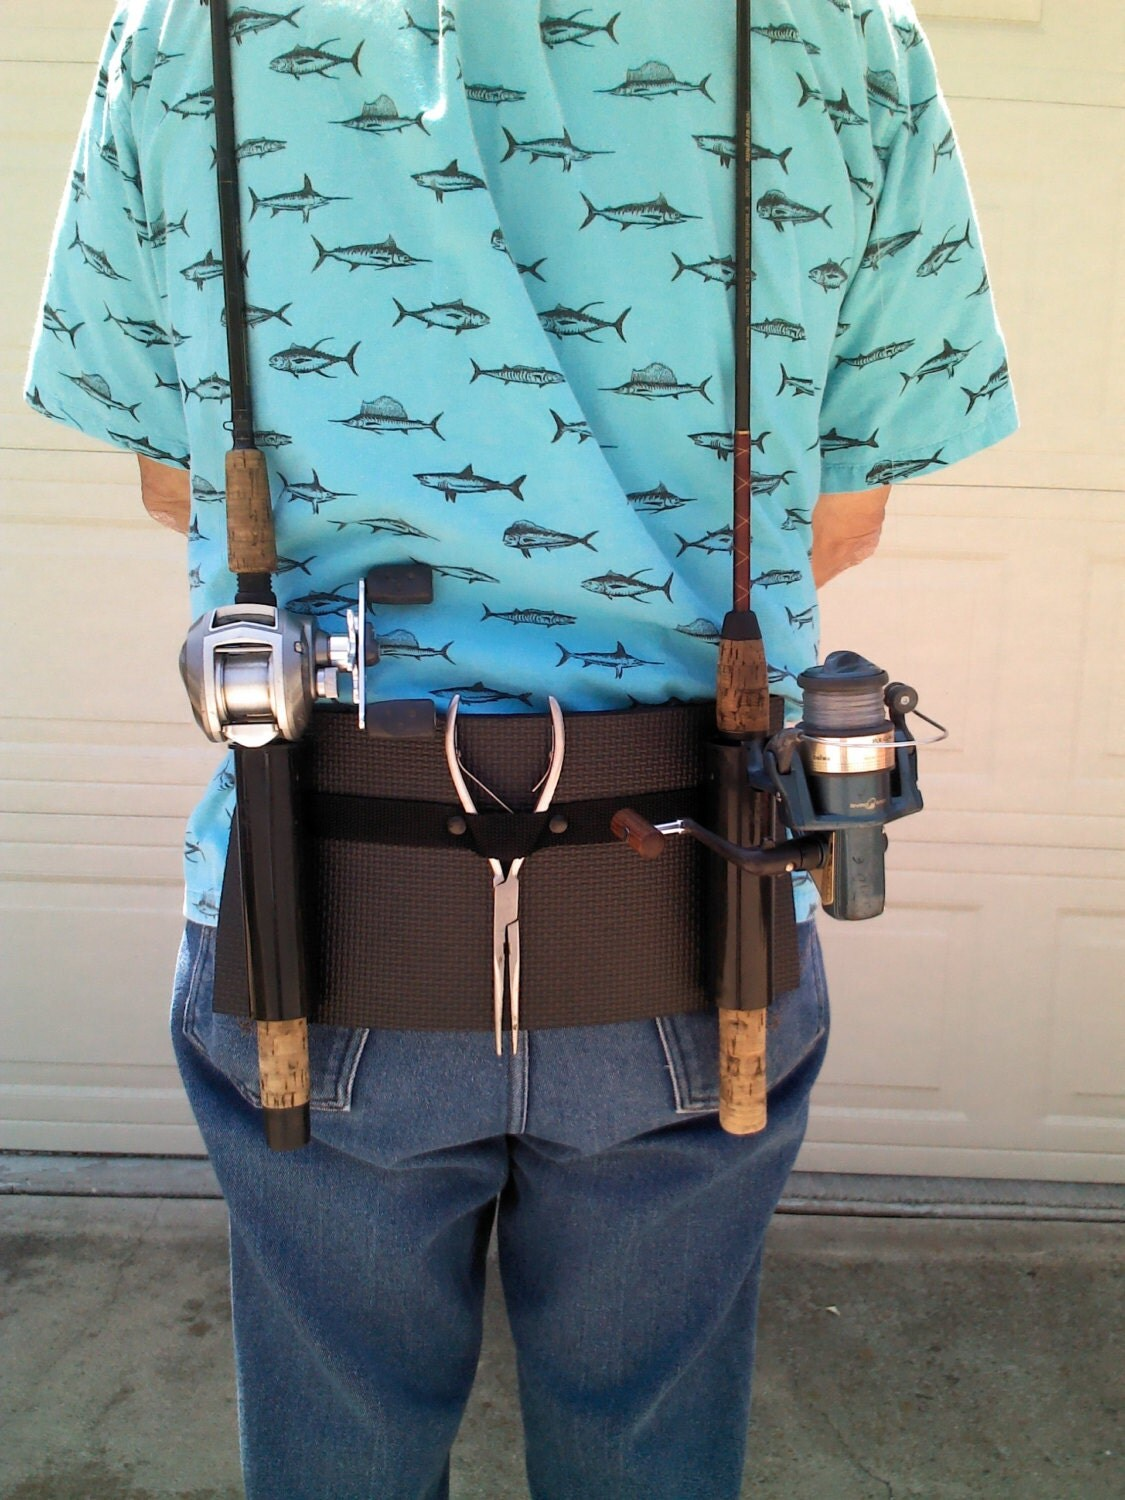 Backpack fishing rod holster holder for Backpacking fishing pole